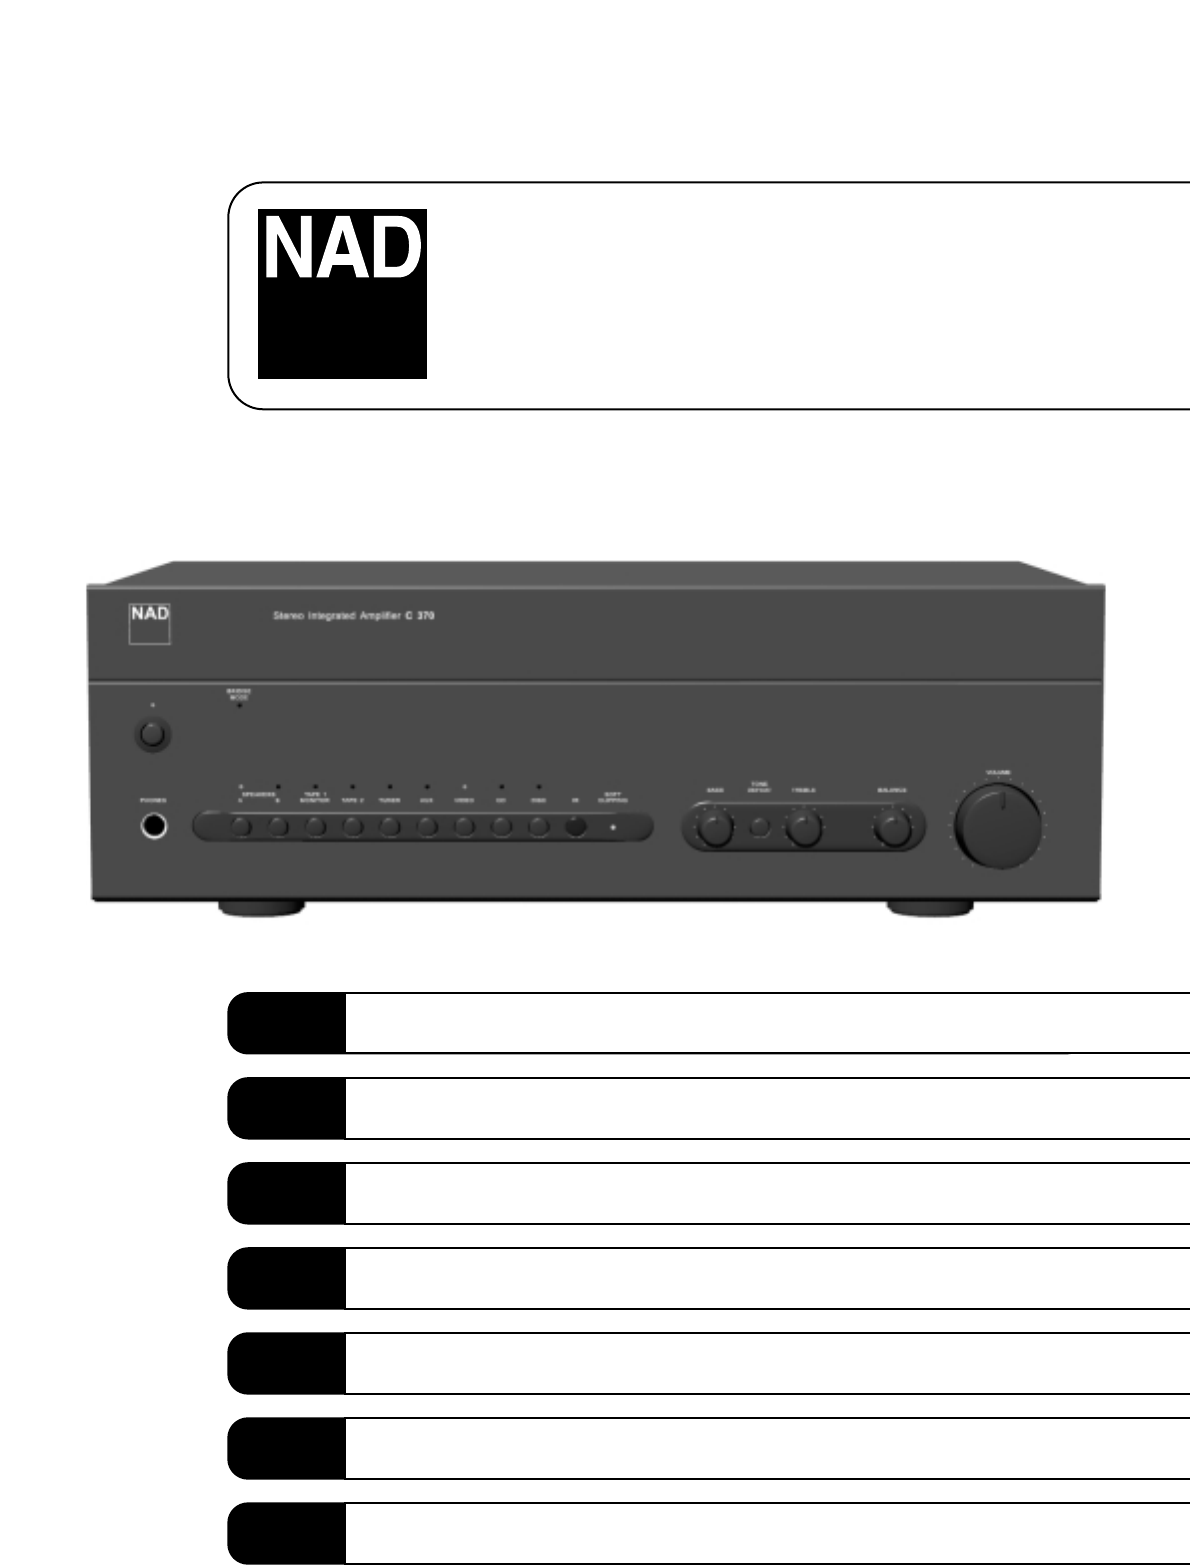 nad stereo amplifier c370 user guide manualsonline com rh audio manualsonline com nad c 370 specs nad c370 repair manual